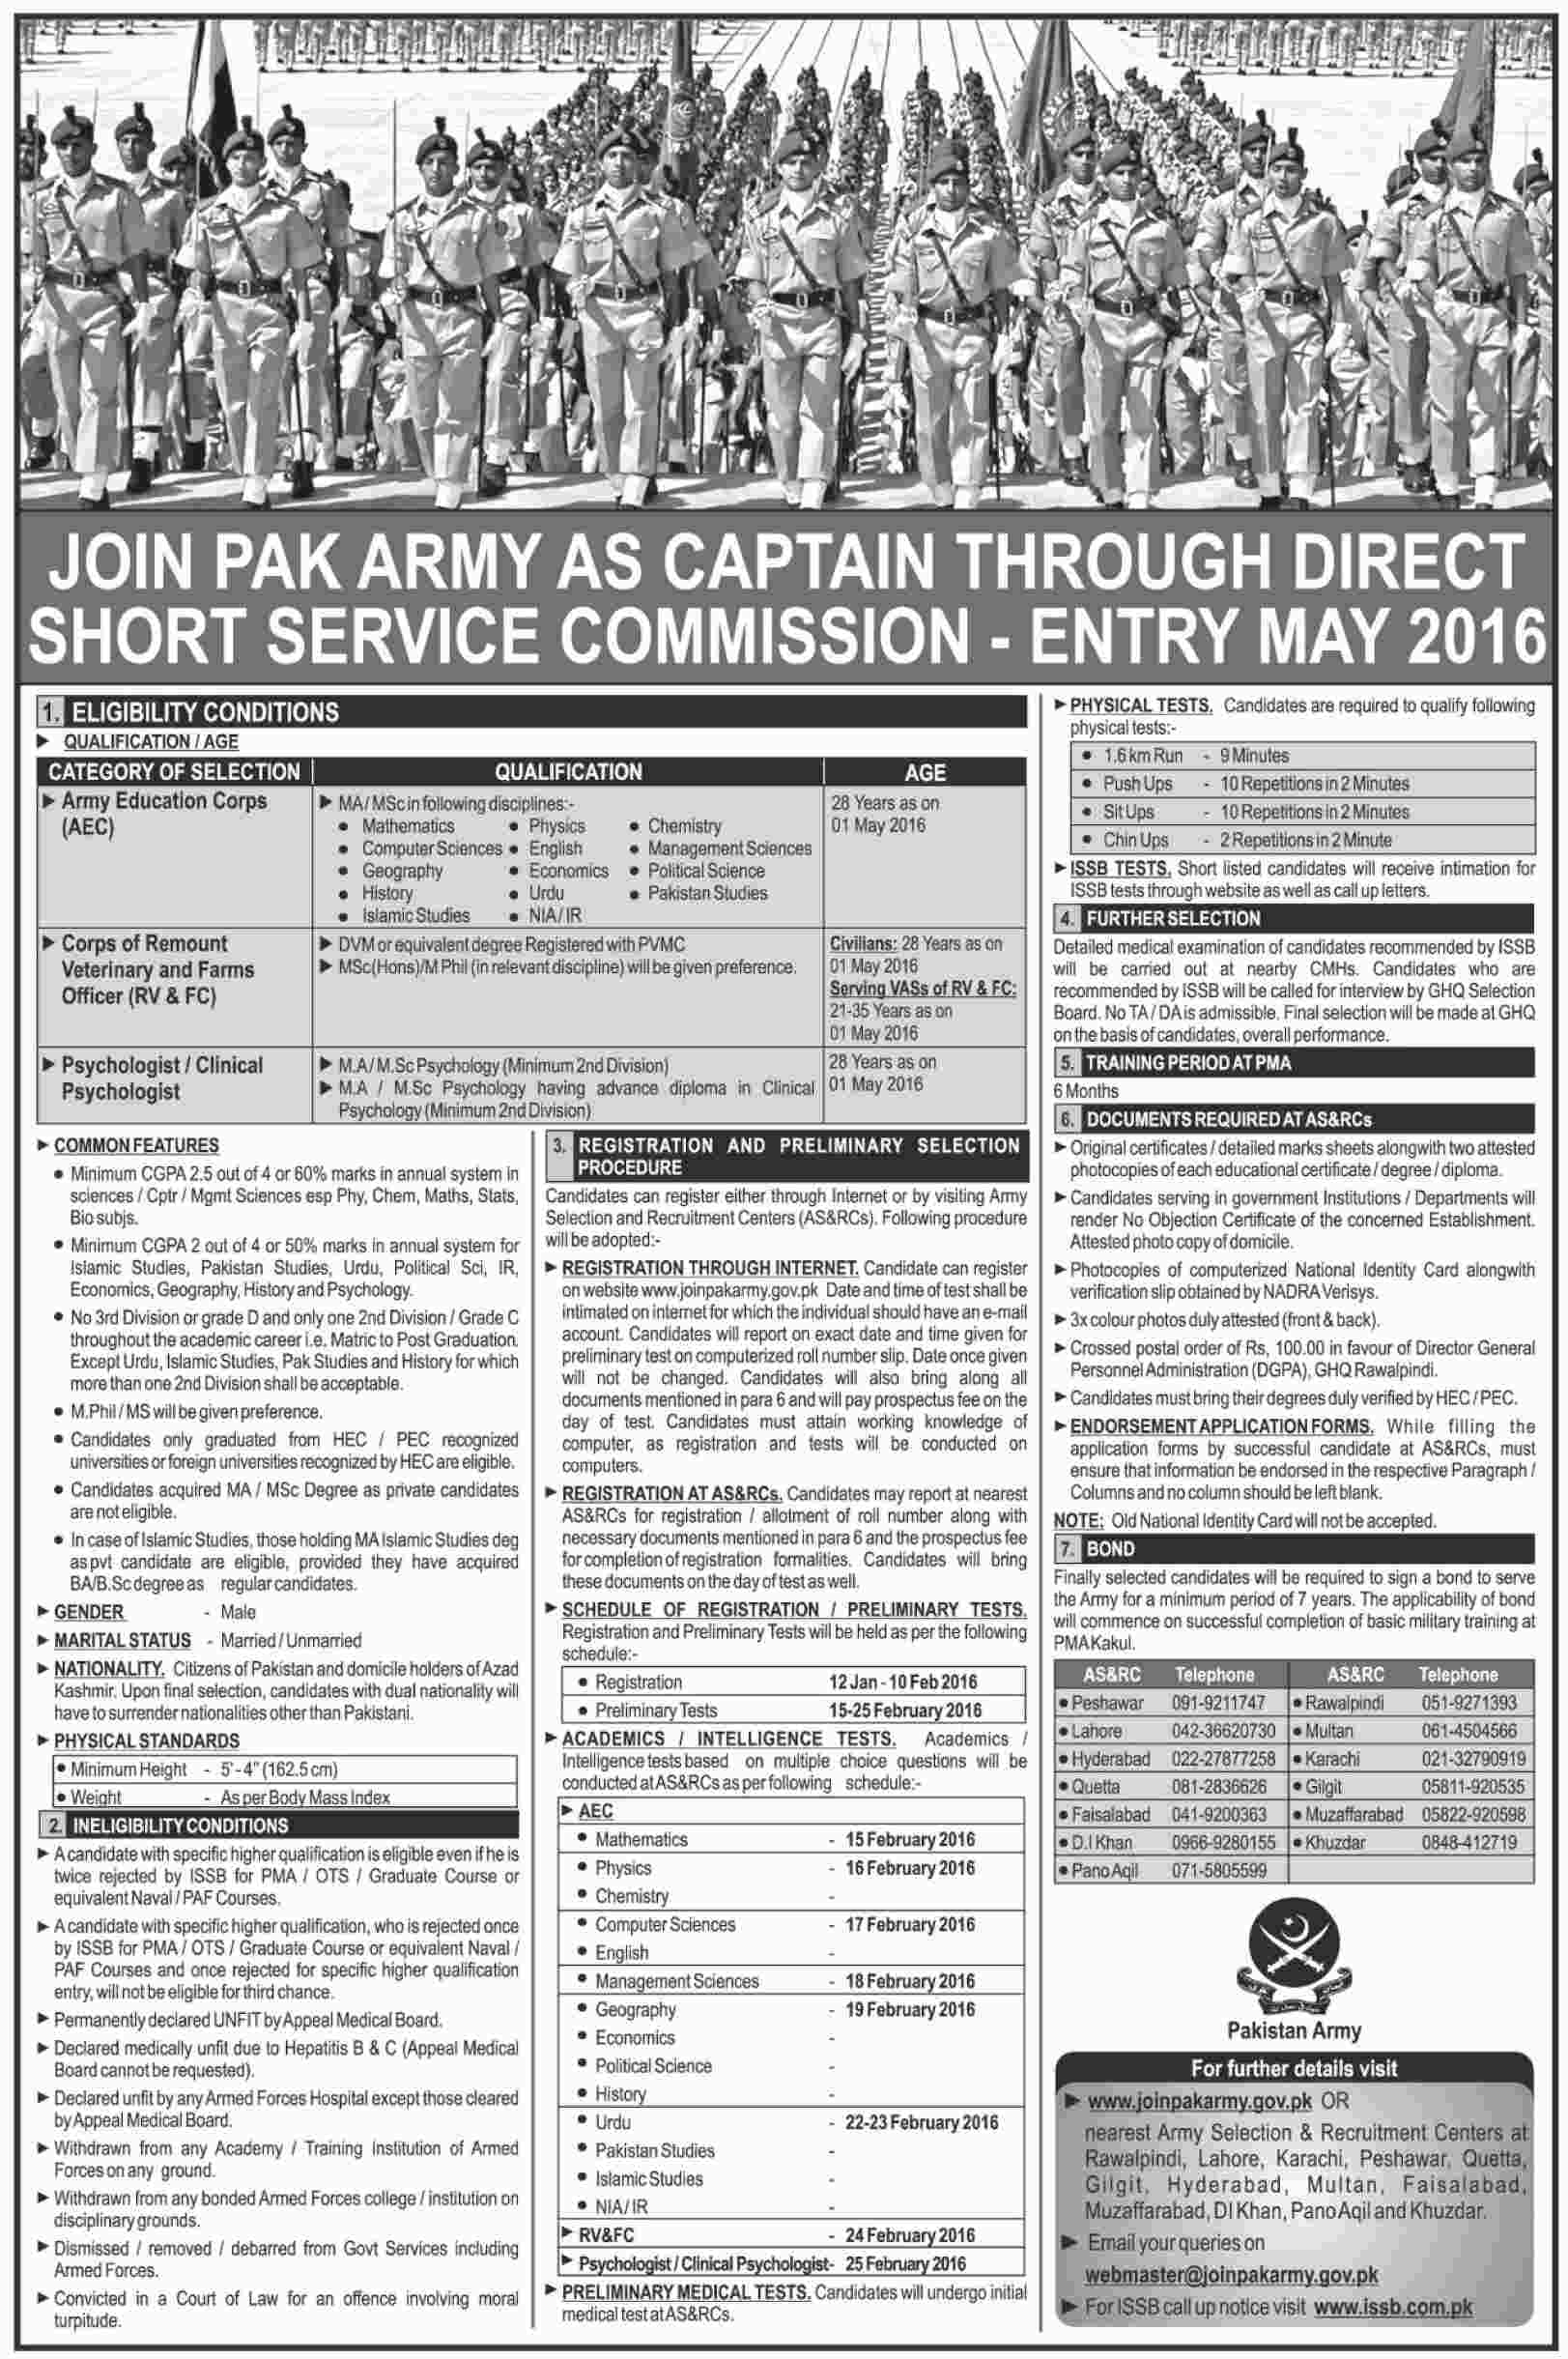 Join Pakistan Army As Captain Entry 2016 By Short Service Commission